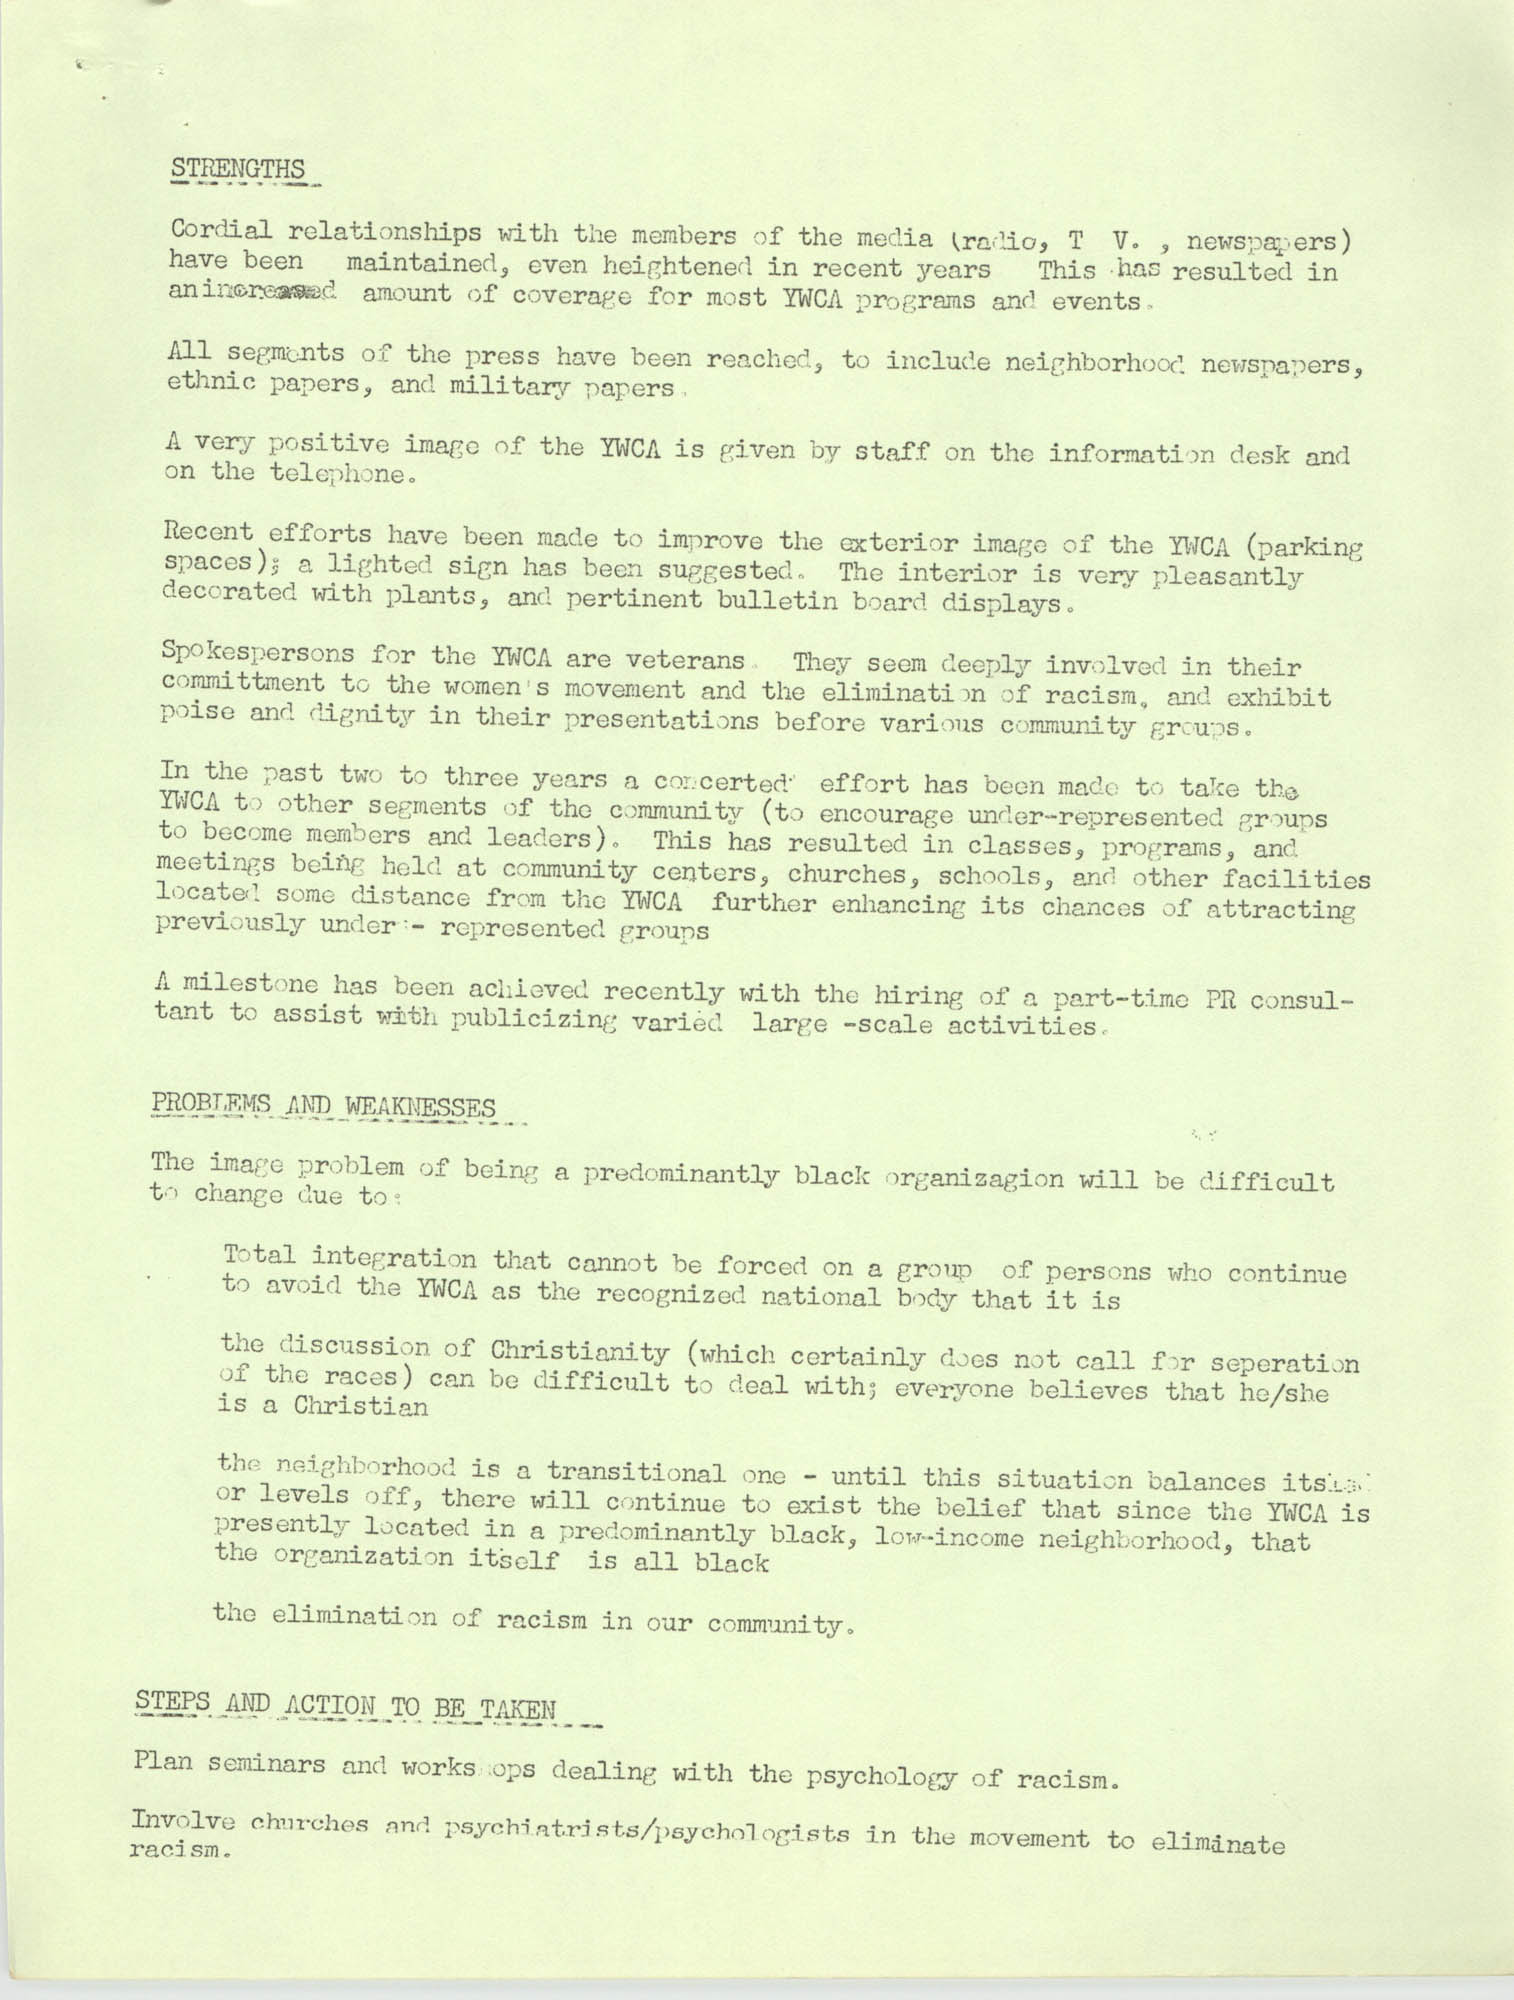 Y.W.C.A. of Greater Charleston Community Relations, Page 2